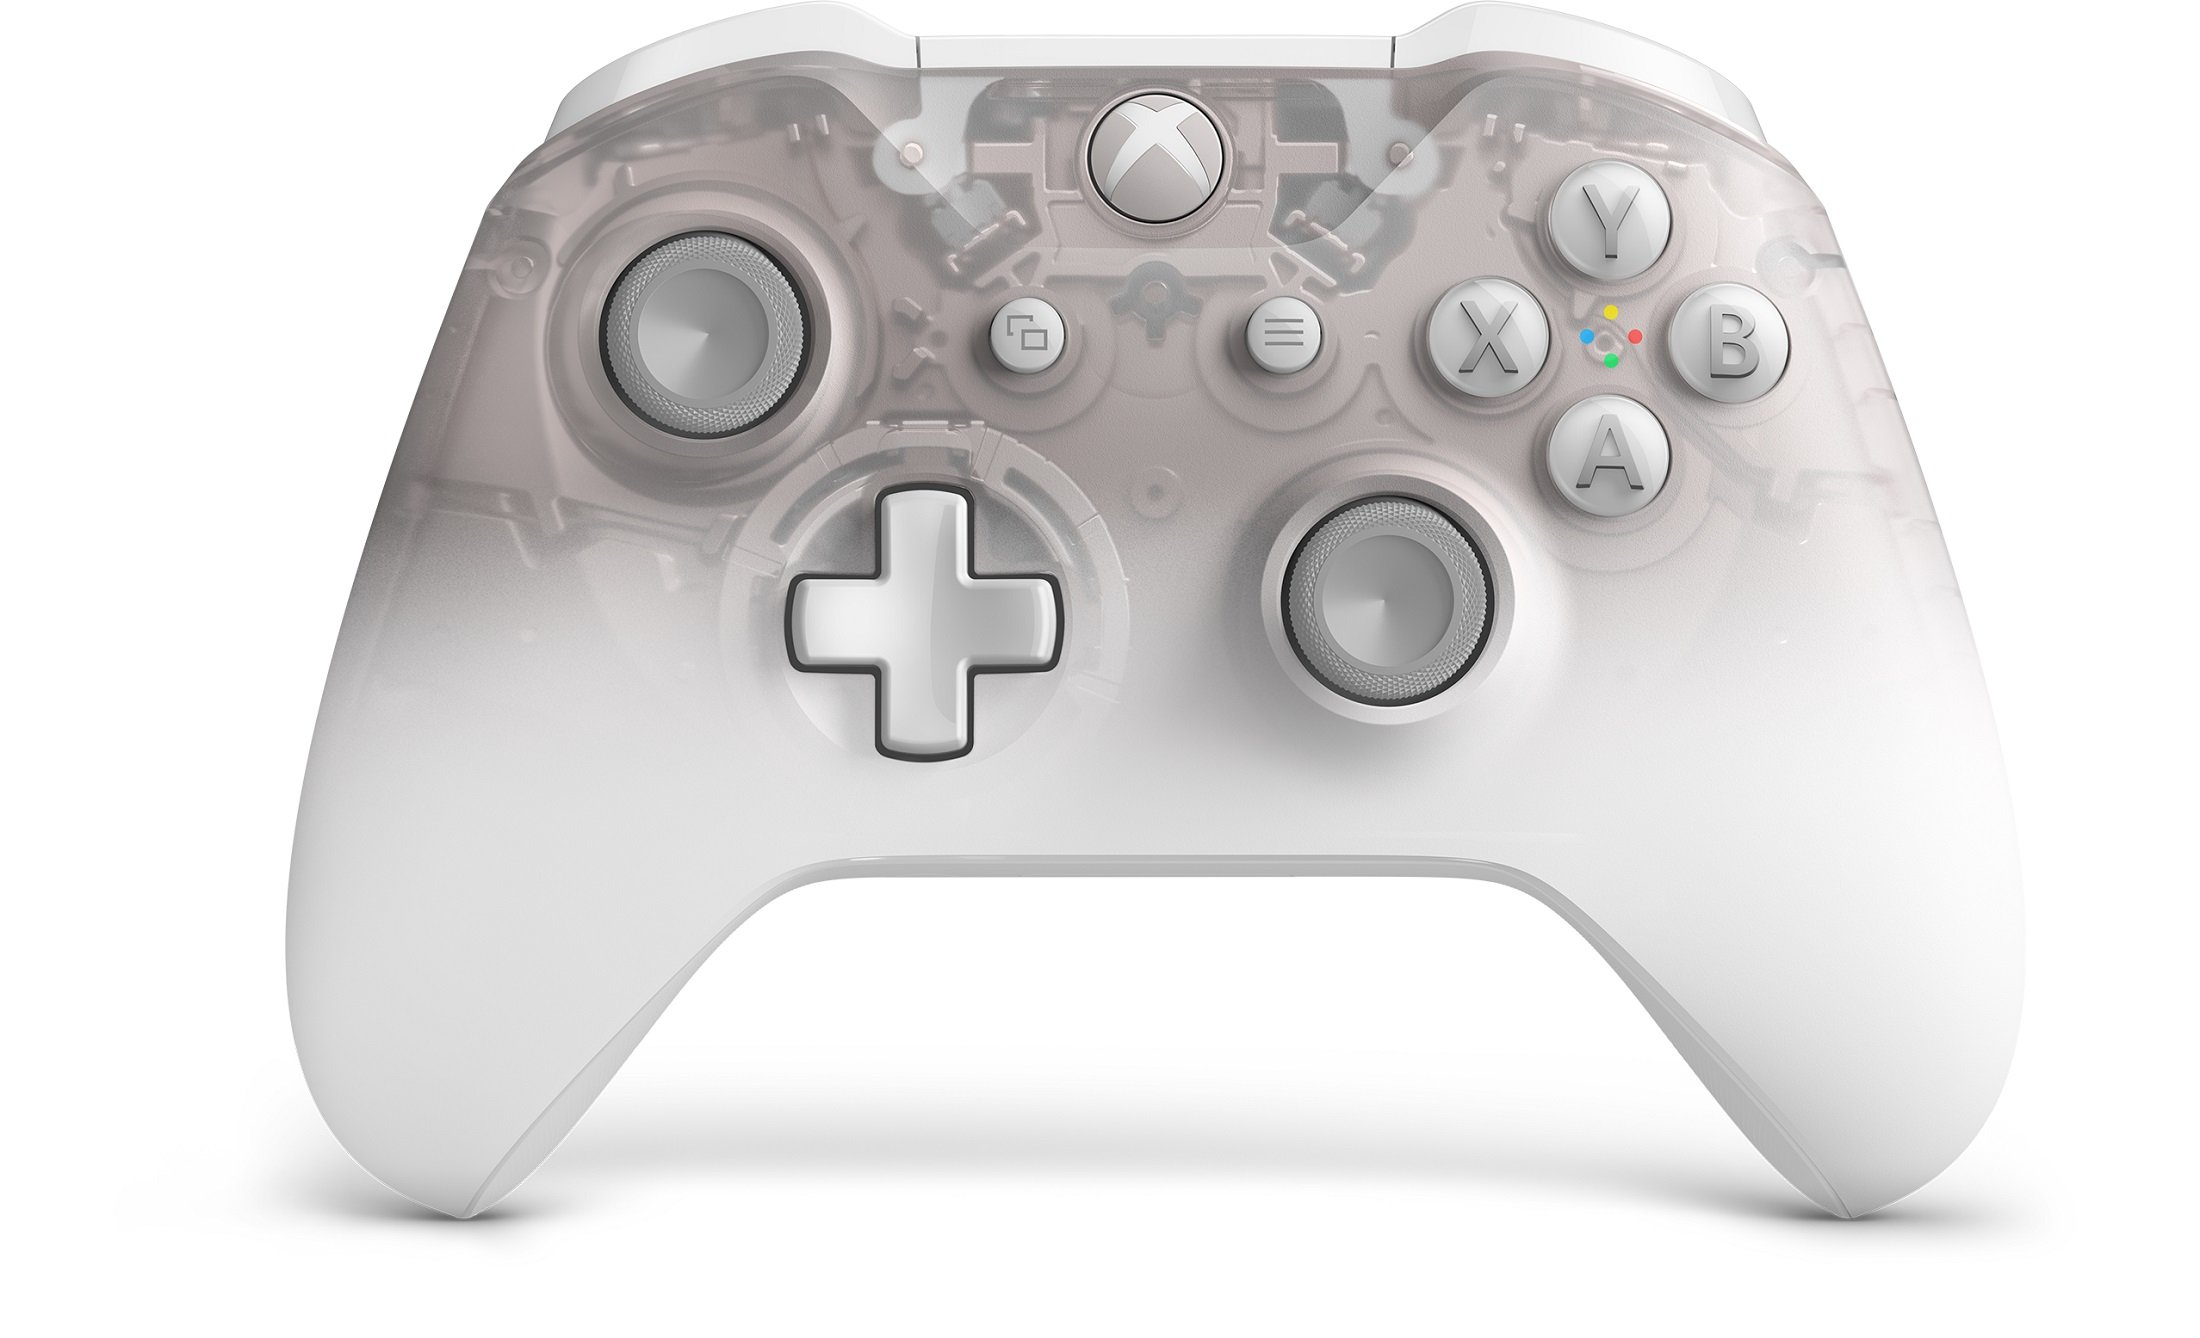 Xbox One controllers compatible with Project Scarlett